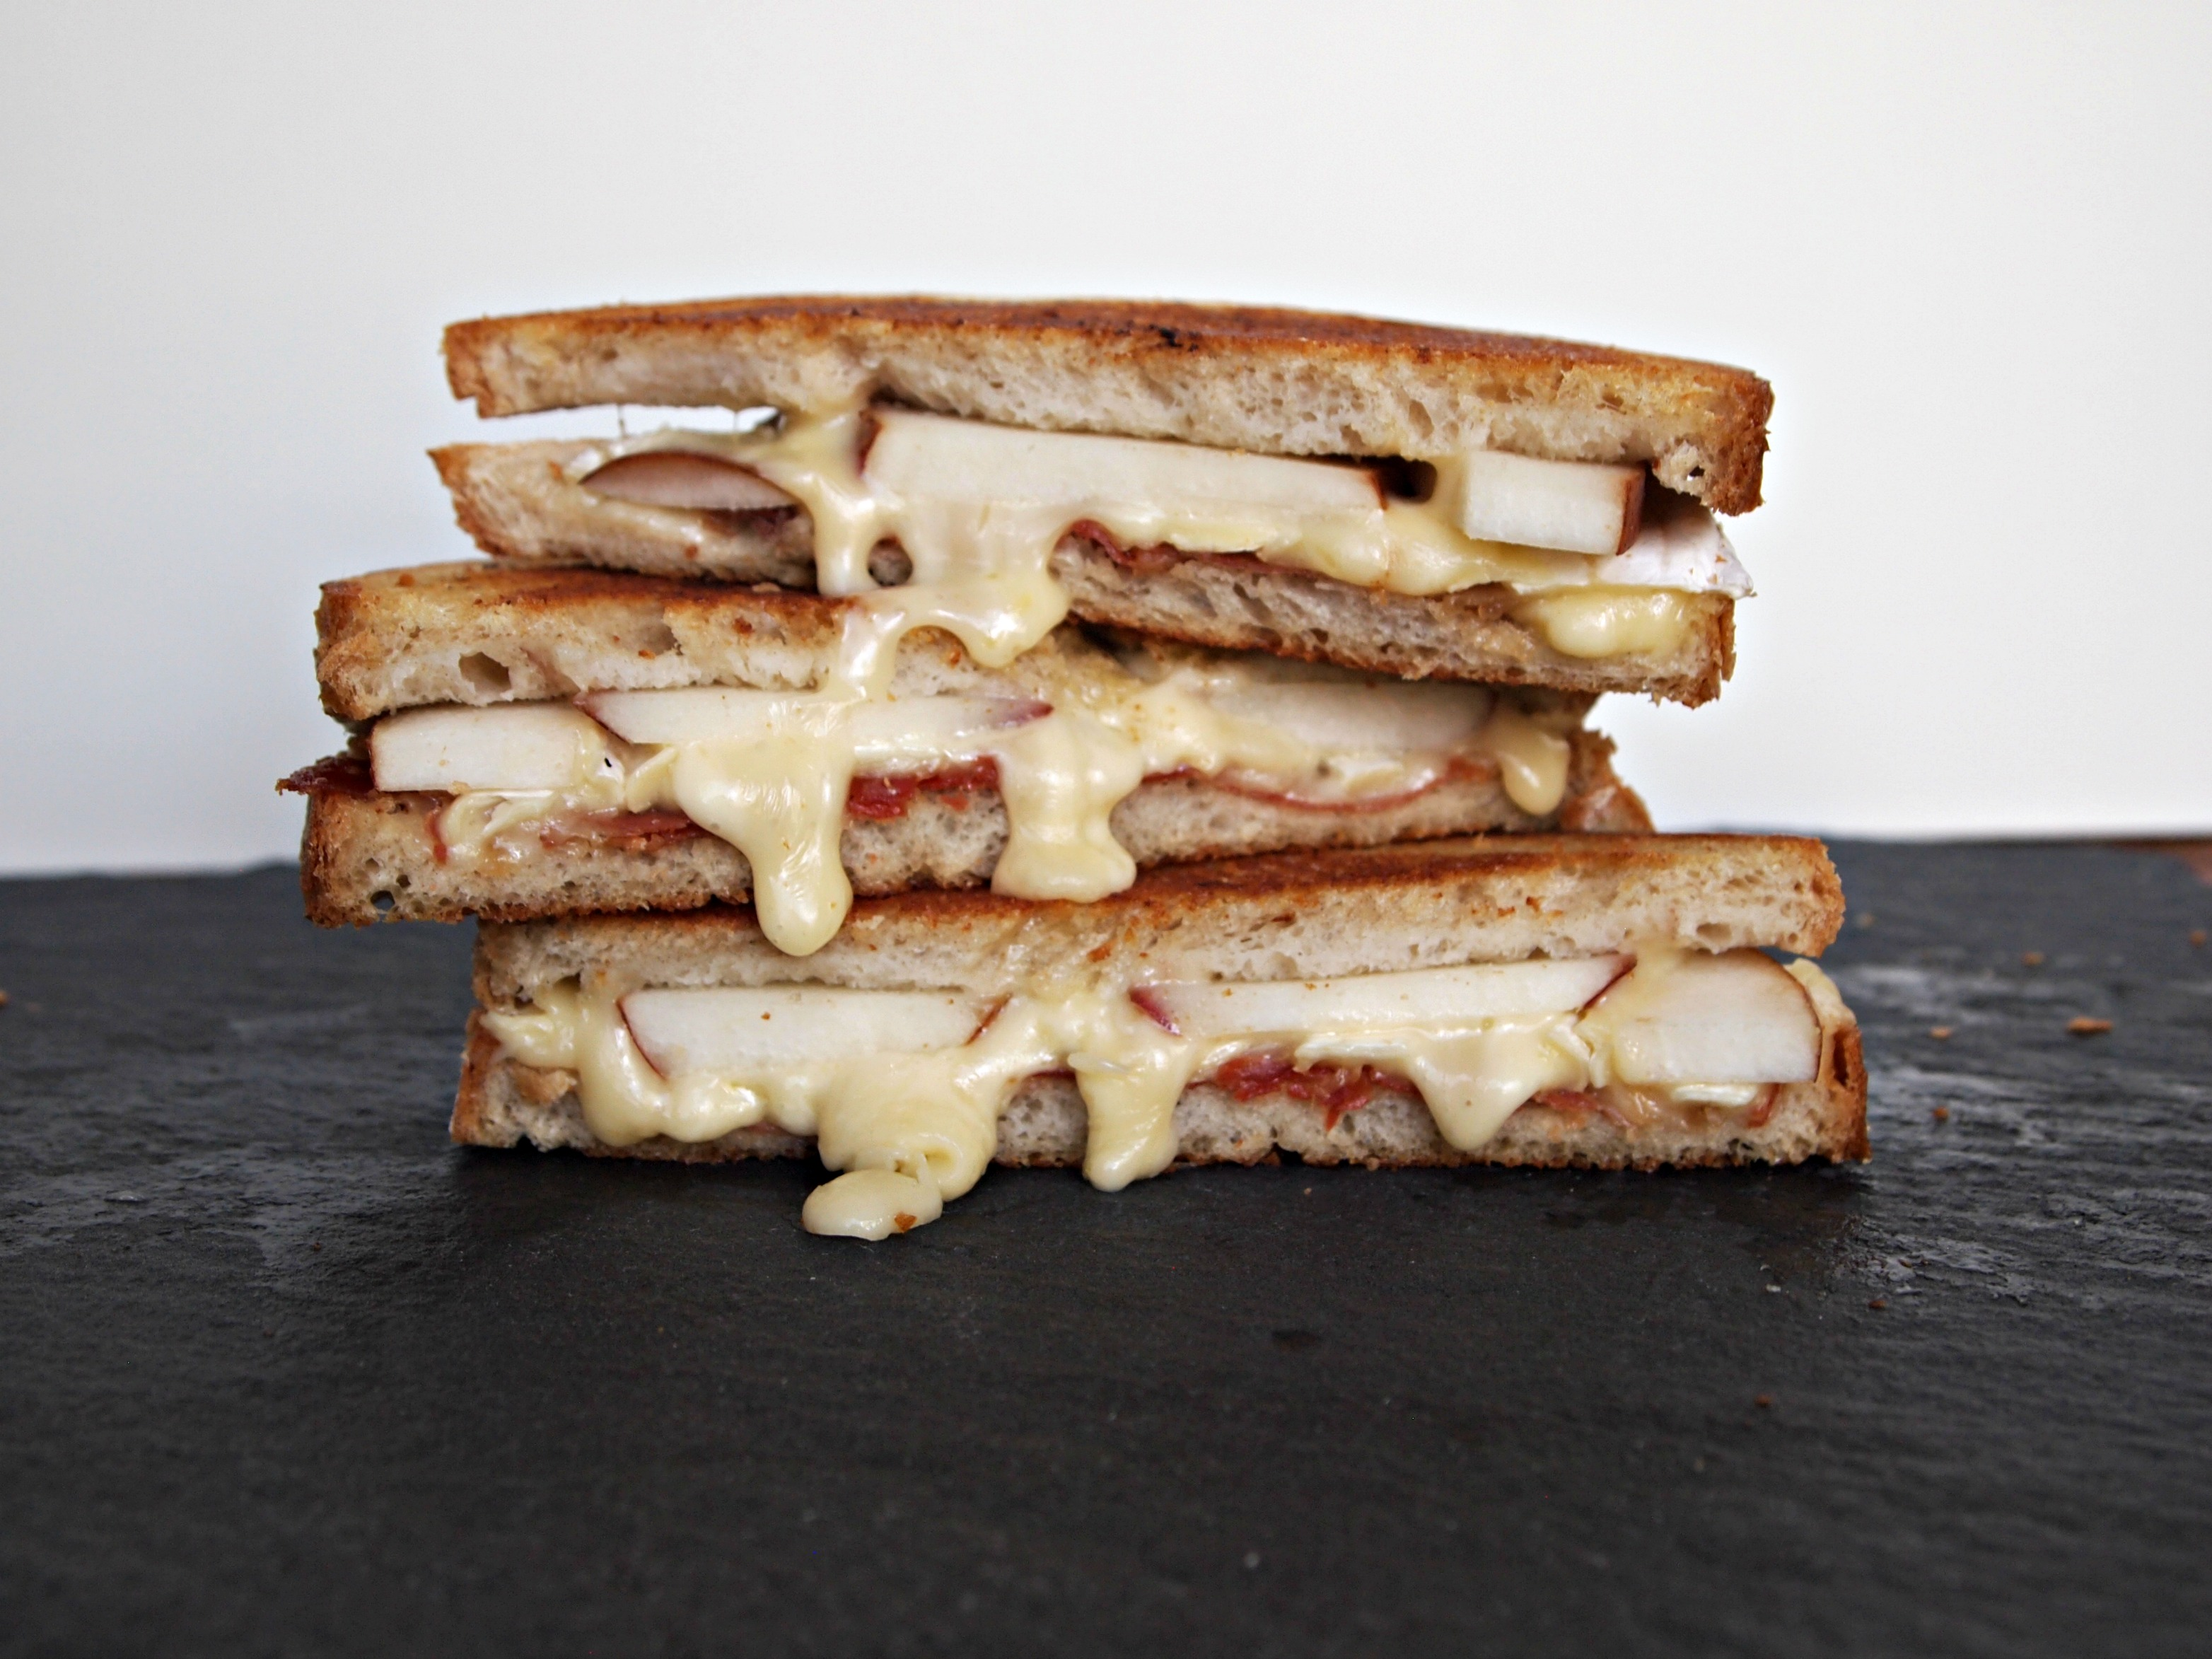 My Kitchen Love Blog - Brie, Prosciutto, and Pear Grilled Cheese